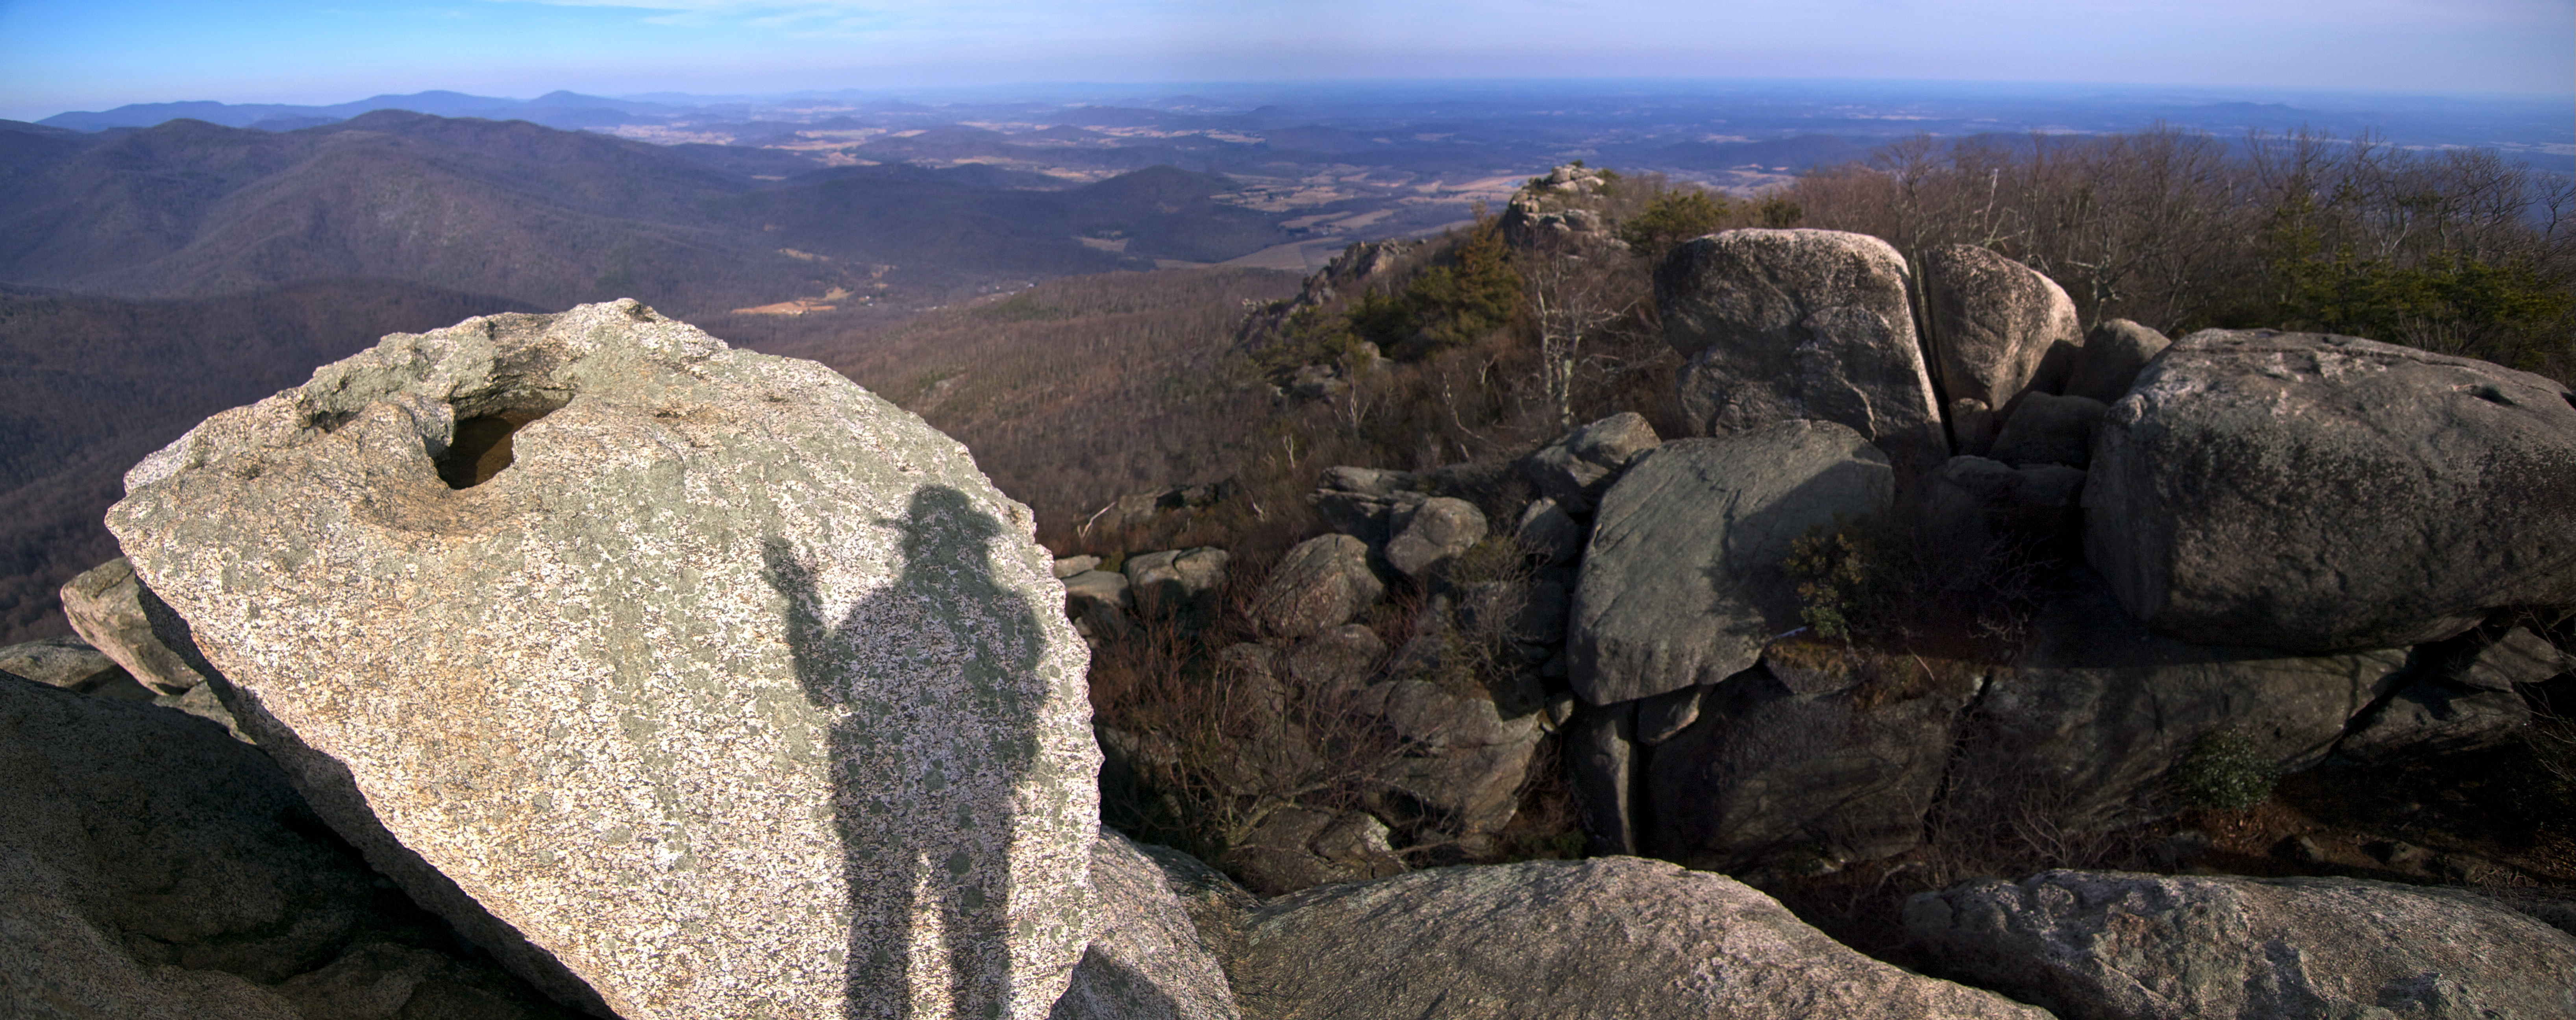 Happy Birthday Hike Old Rag Travels With The Blonde Coyote